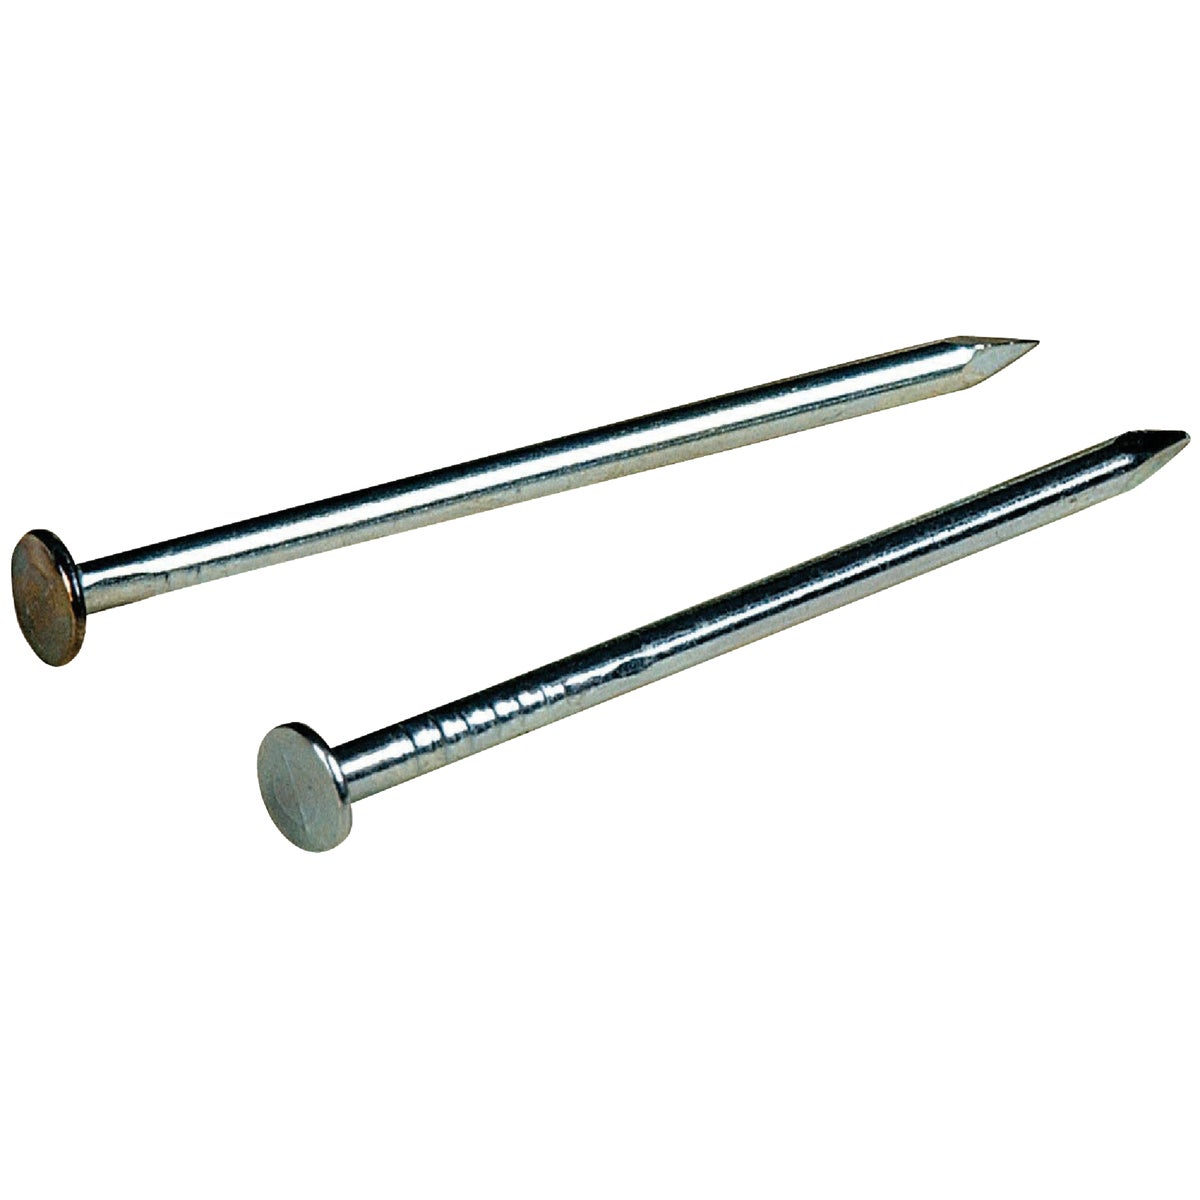 1/2X19 WIRE NAIL